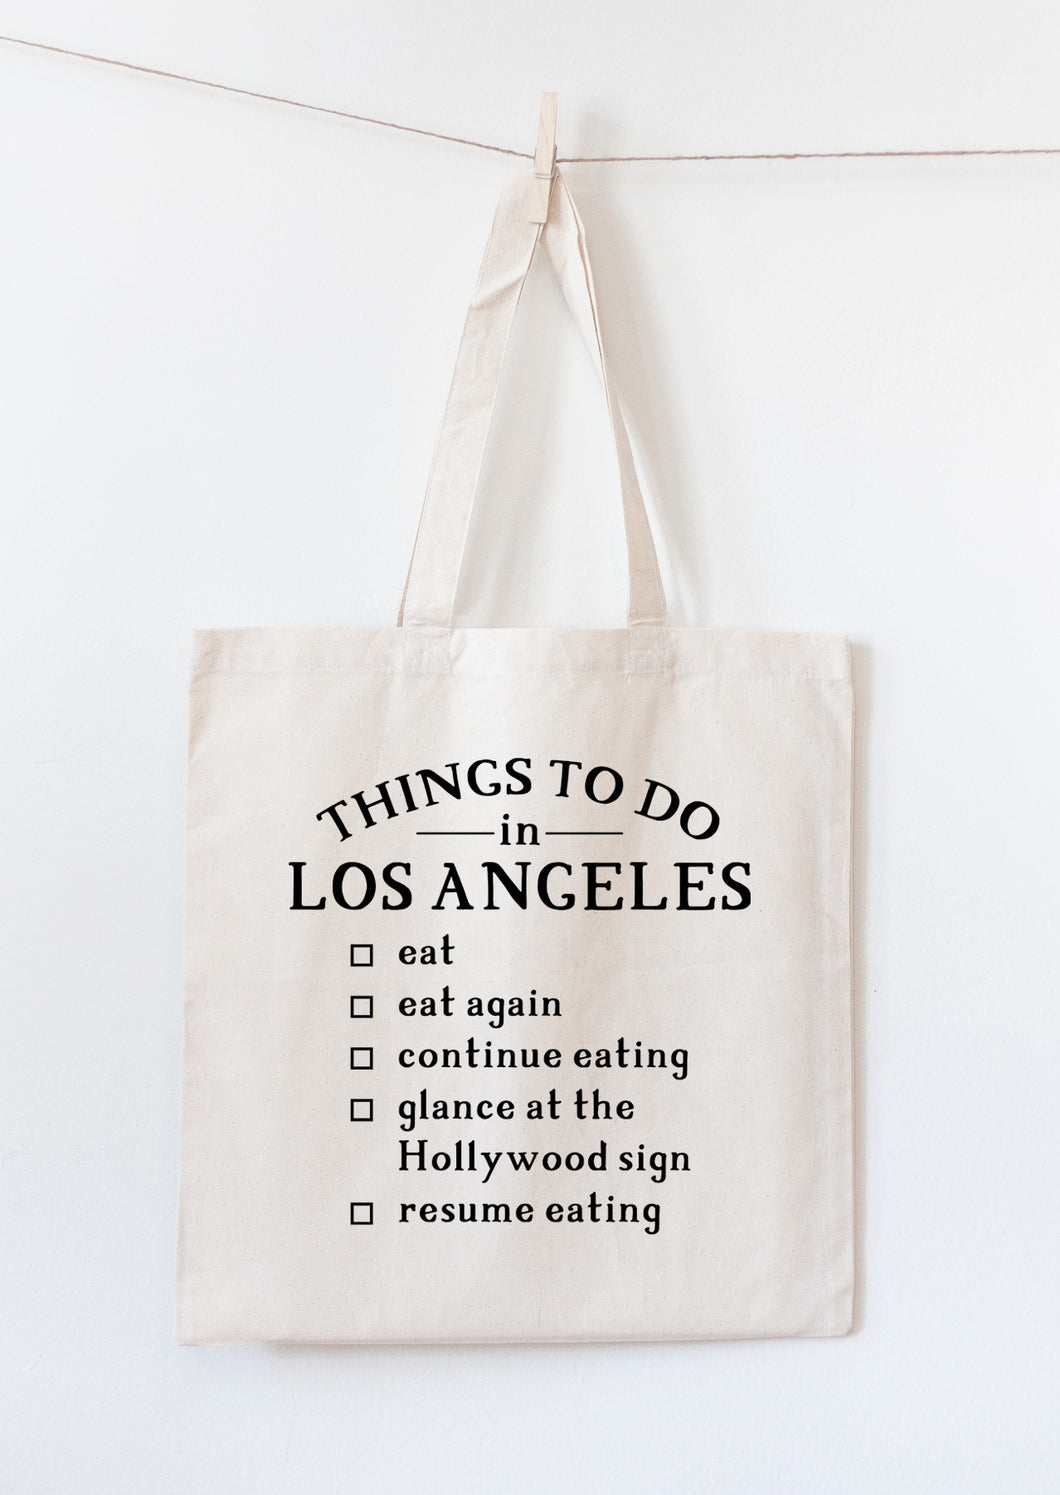 Los Angeles tote bag souvenir